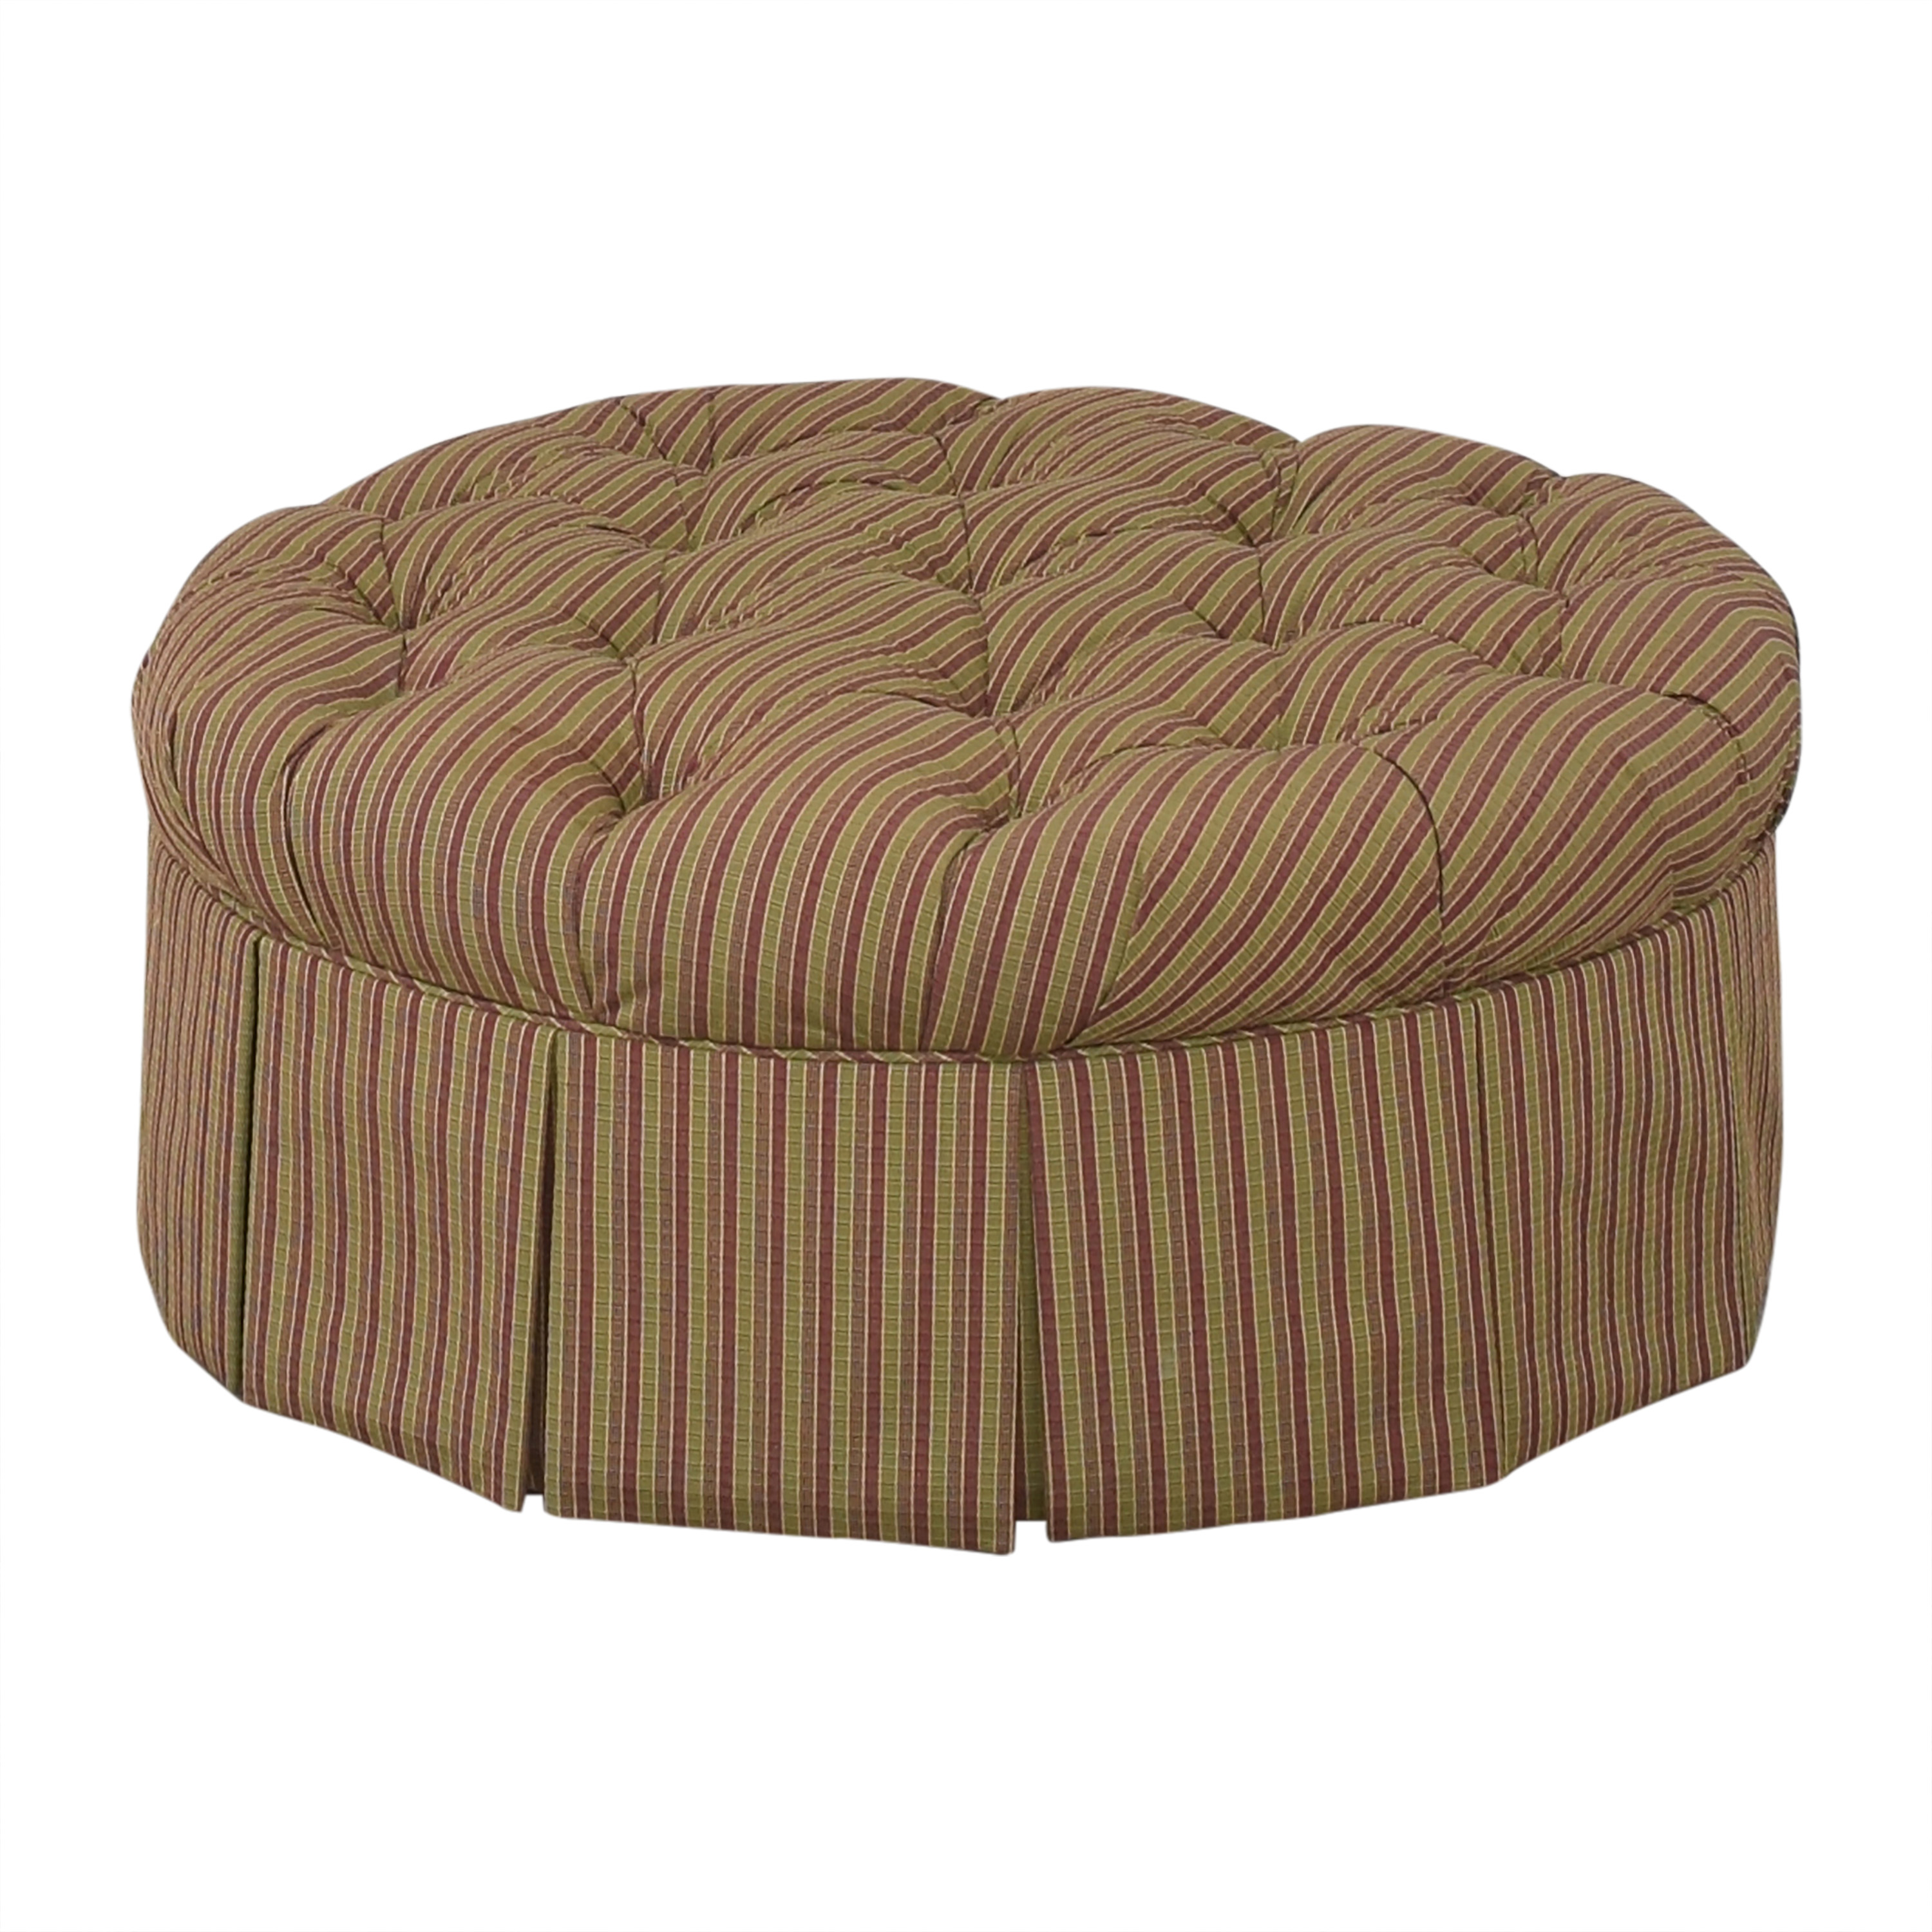 Domain Home Domain Home Round Tufted Ottoman nyc